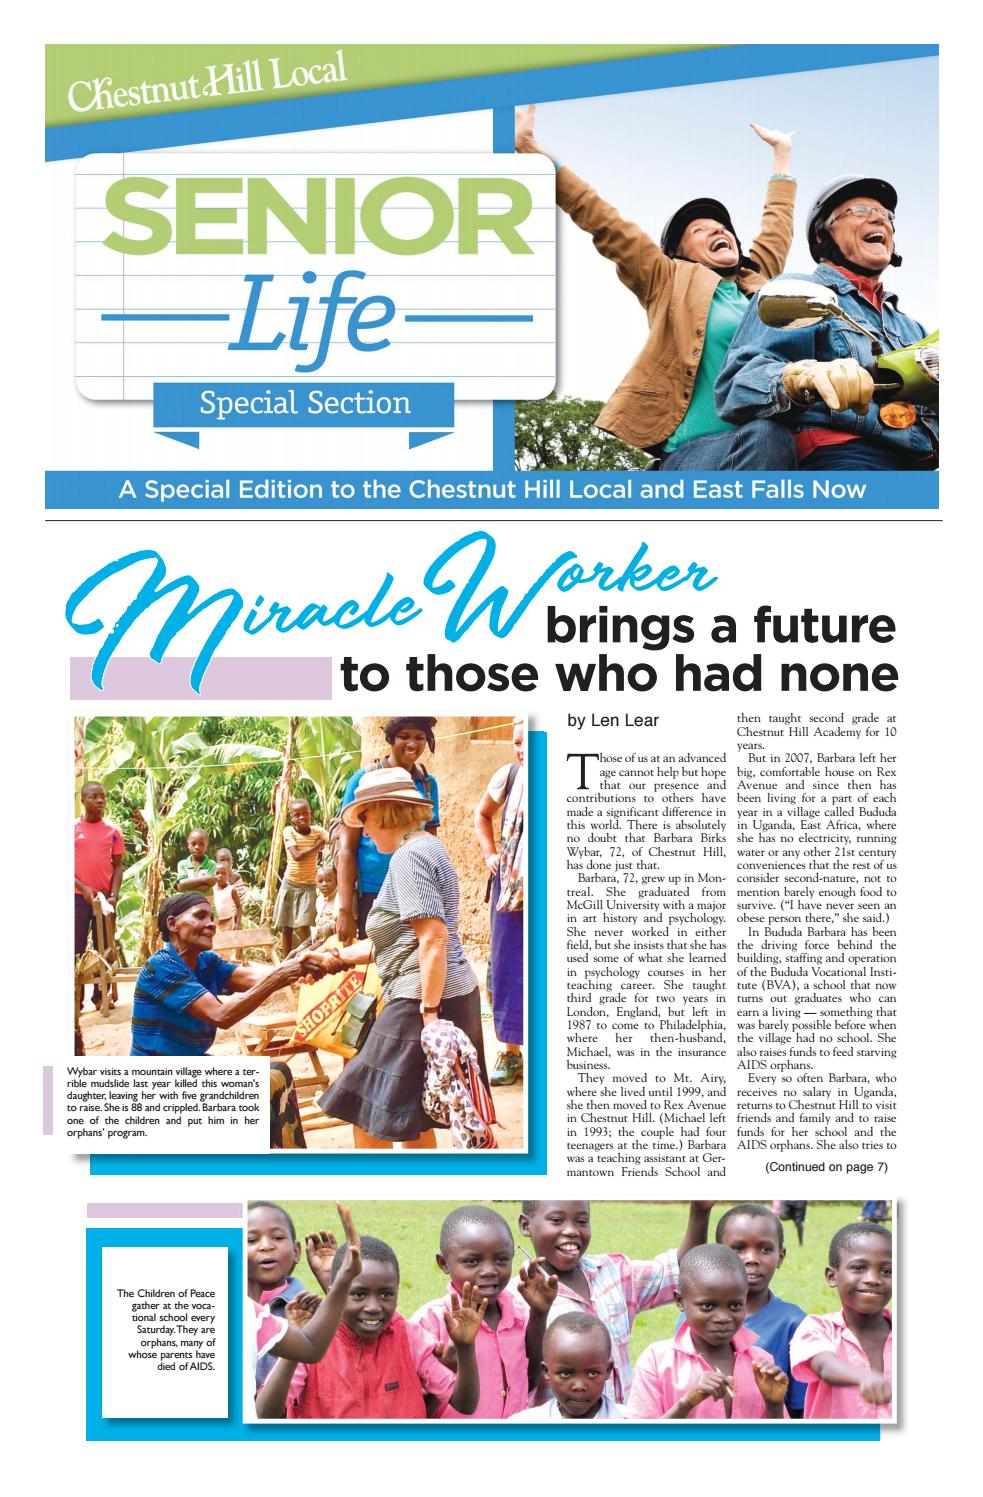 Senior Life June 2019 by The Chestnut Hill Local - issuu